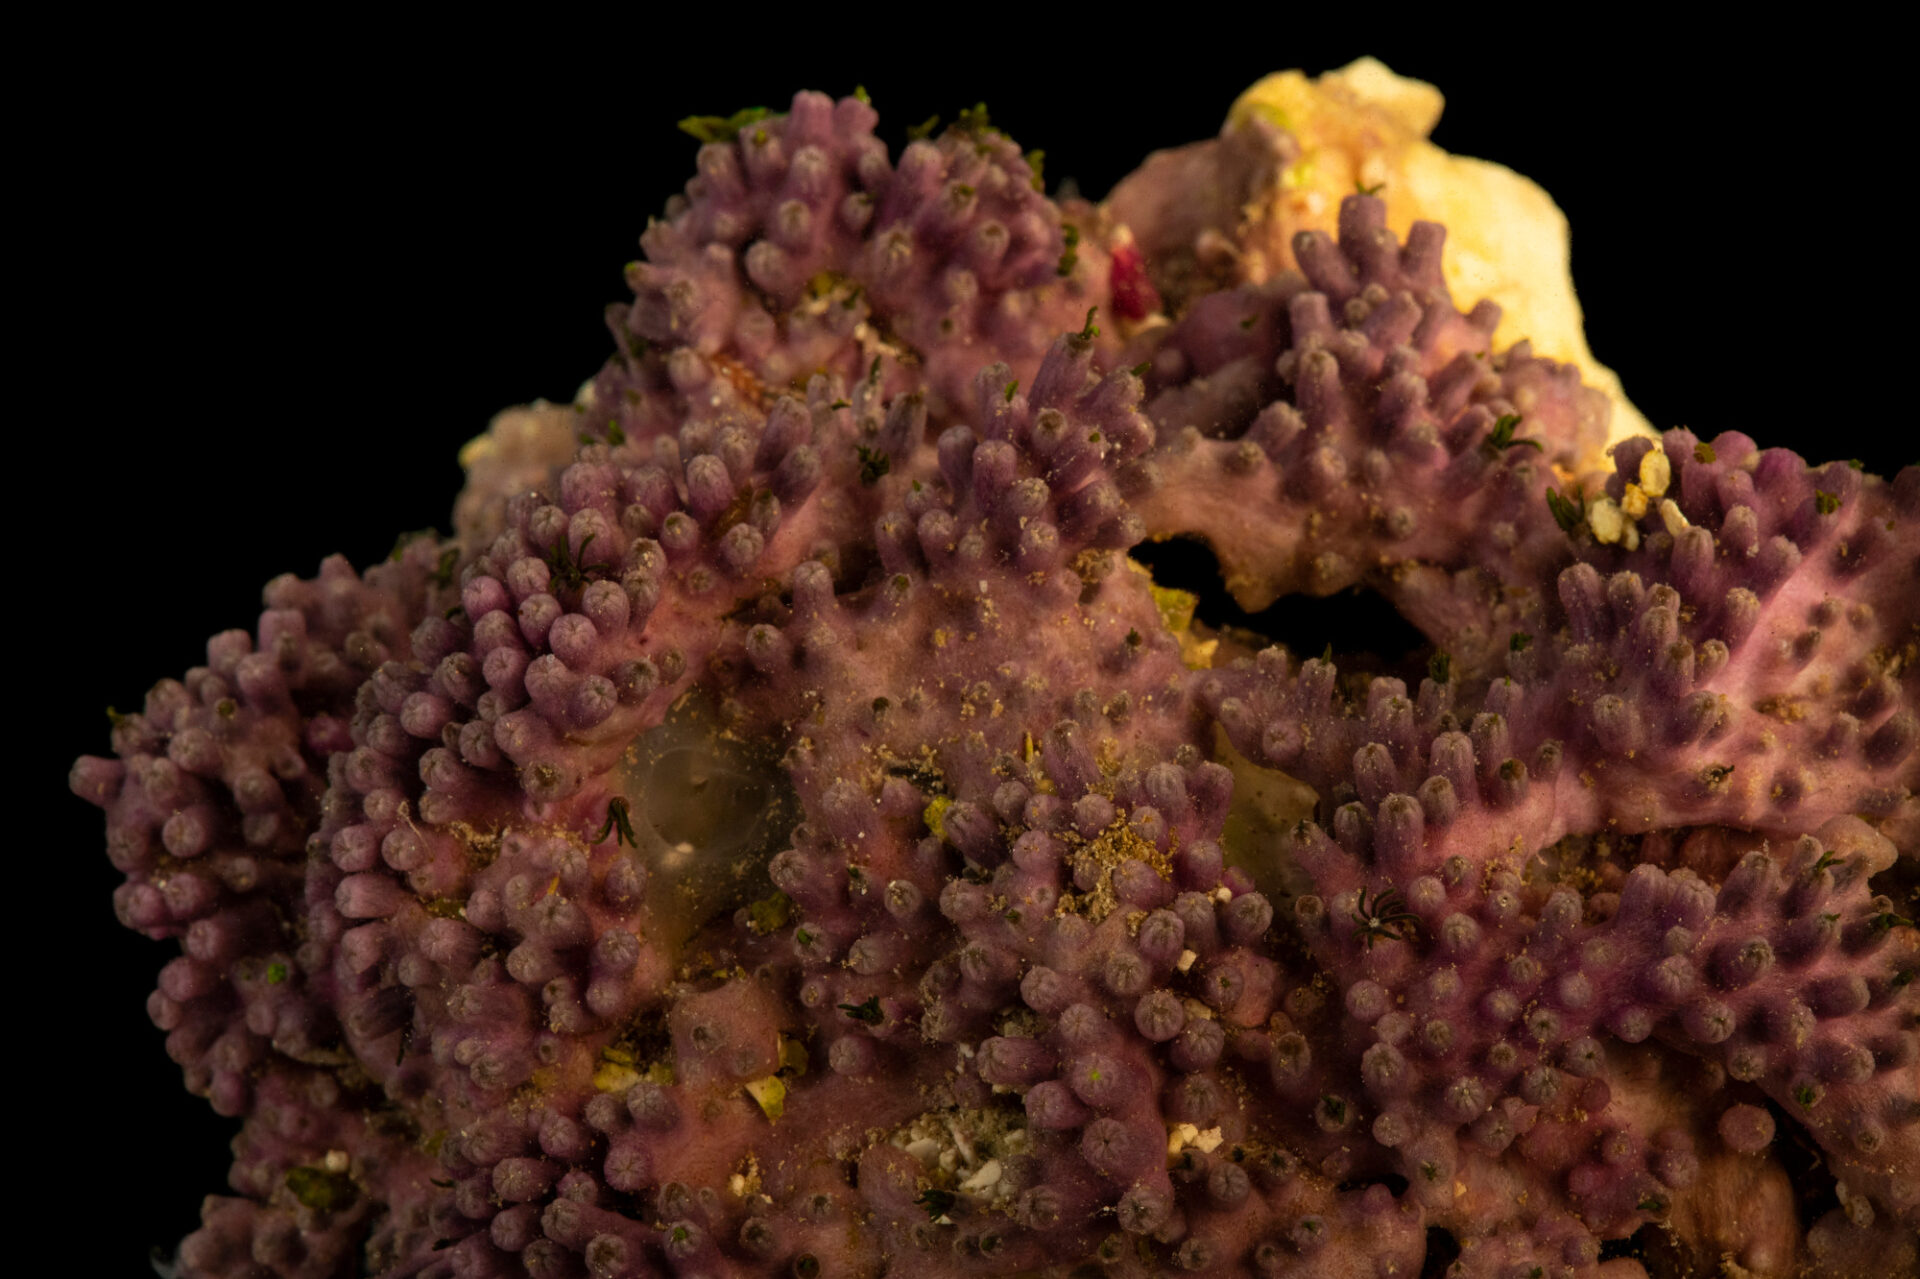 Photo: Green star polyps (Pachyclavularia violacea) from a private collection in Saint Louis.